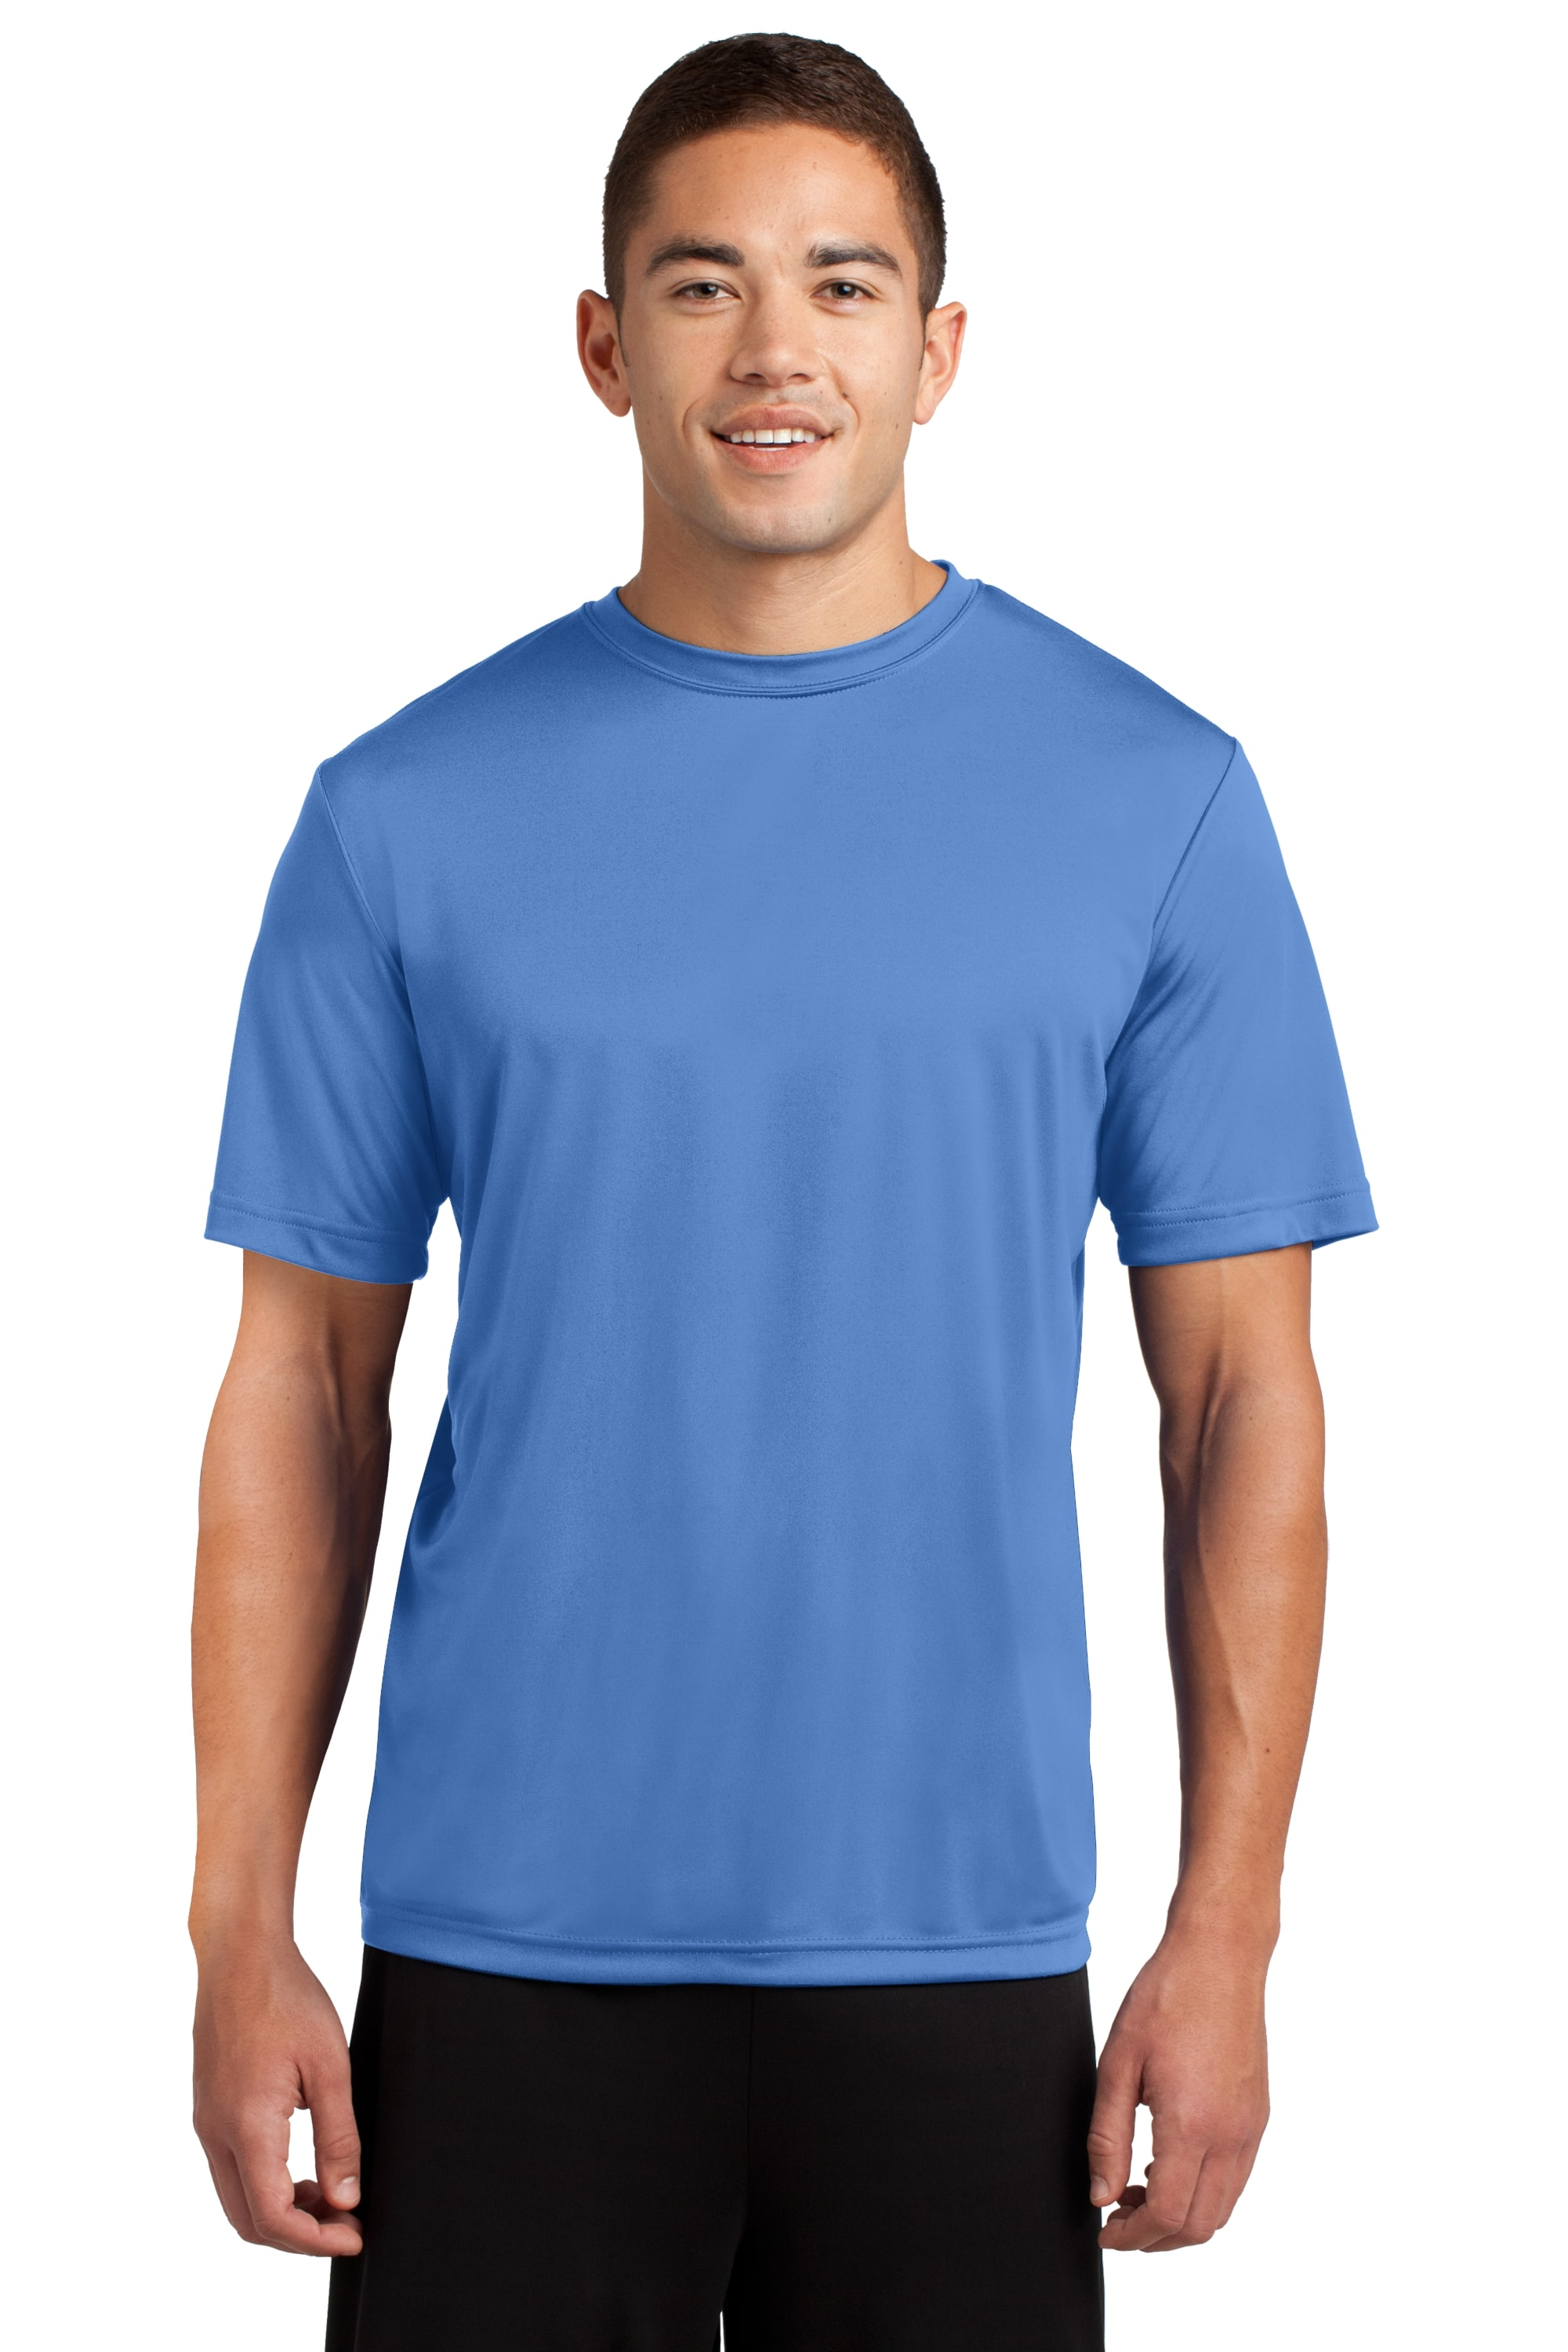 St350 Sport Tek Posicharge Competitor Tee These tees are perfect for everyday casual wear, outdoor adventures. st350 sport tek posicharge competitor tee